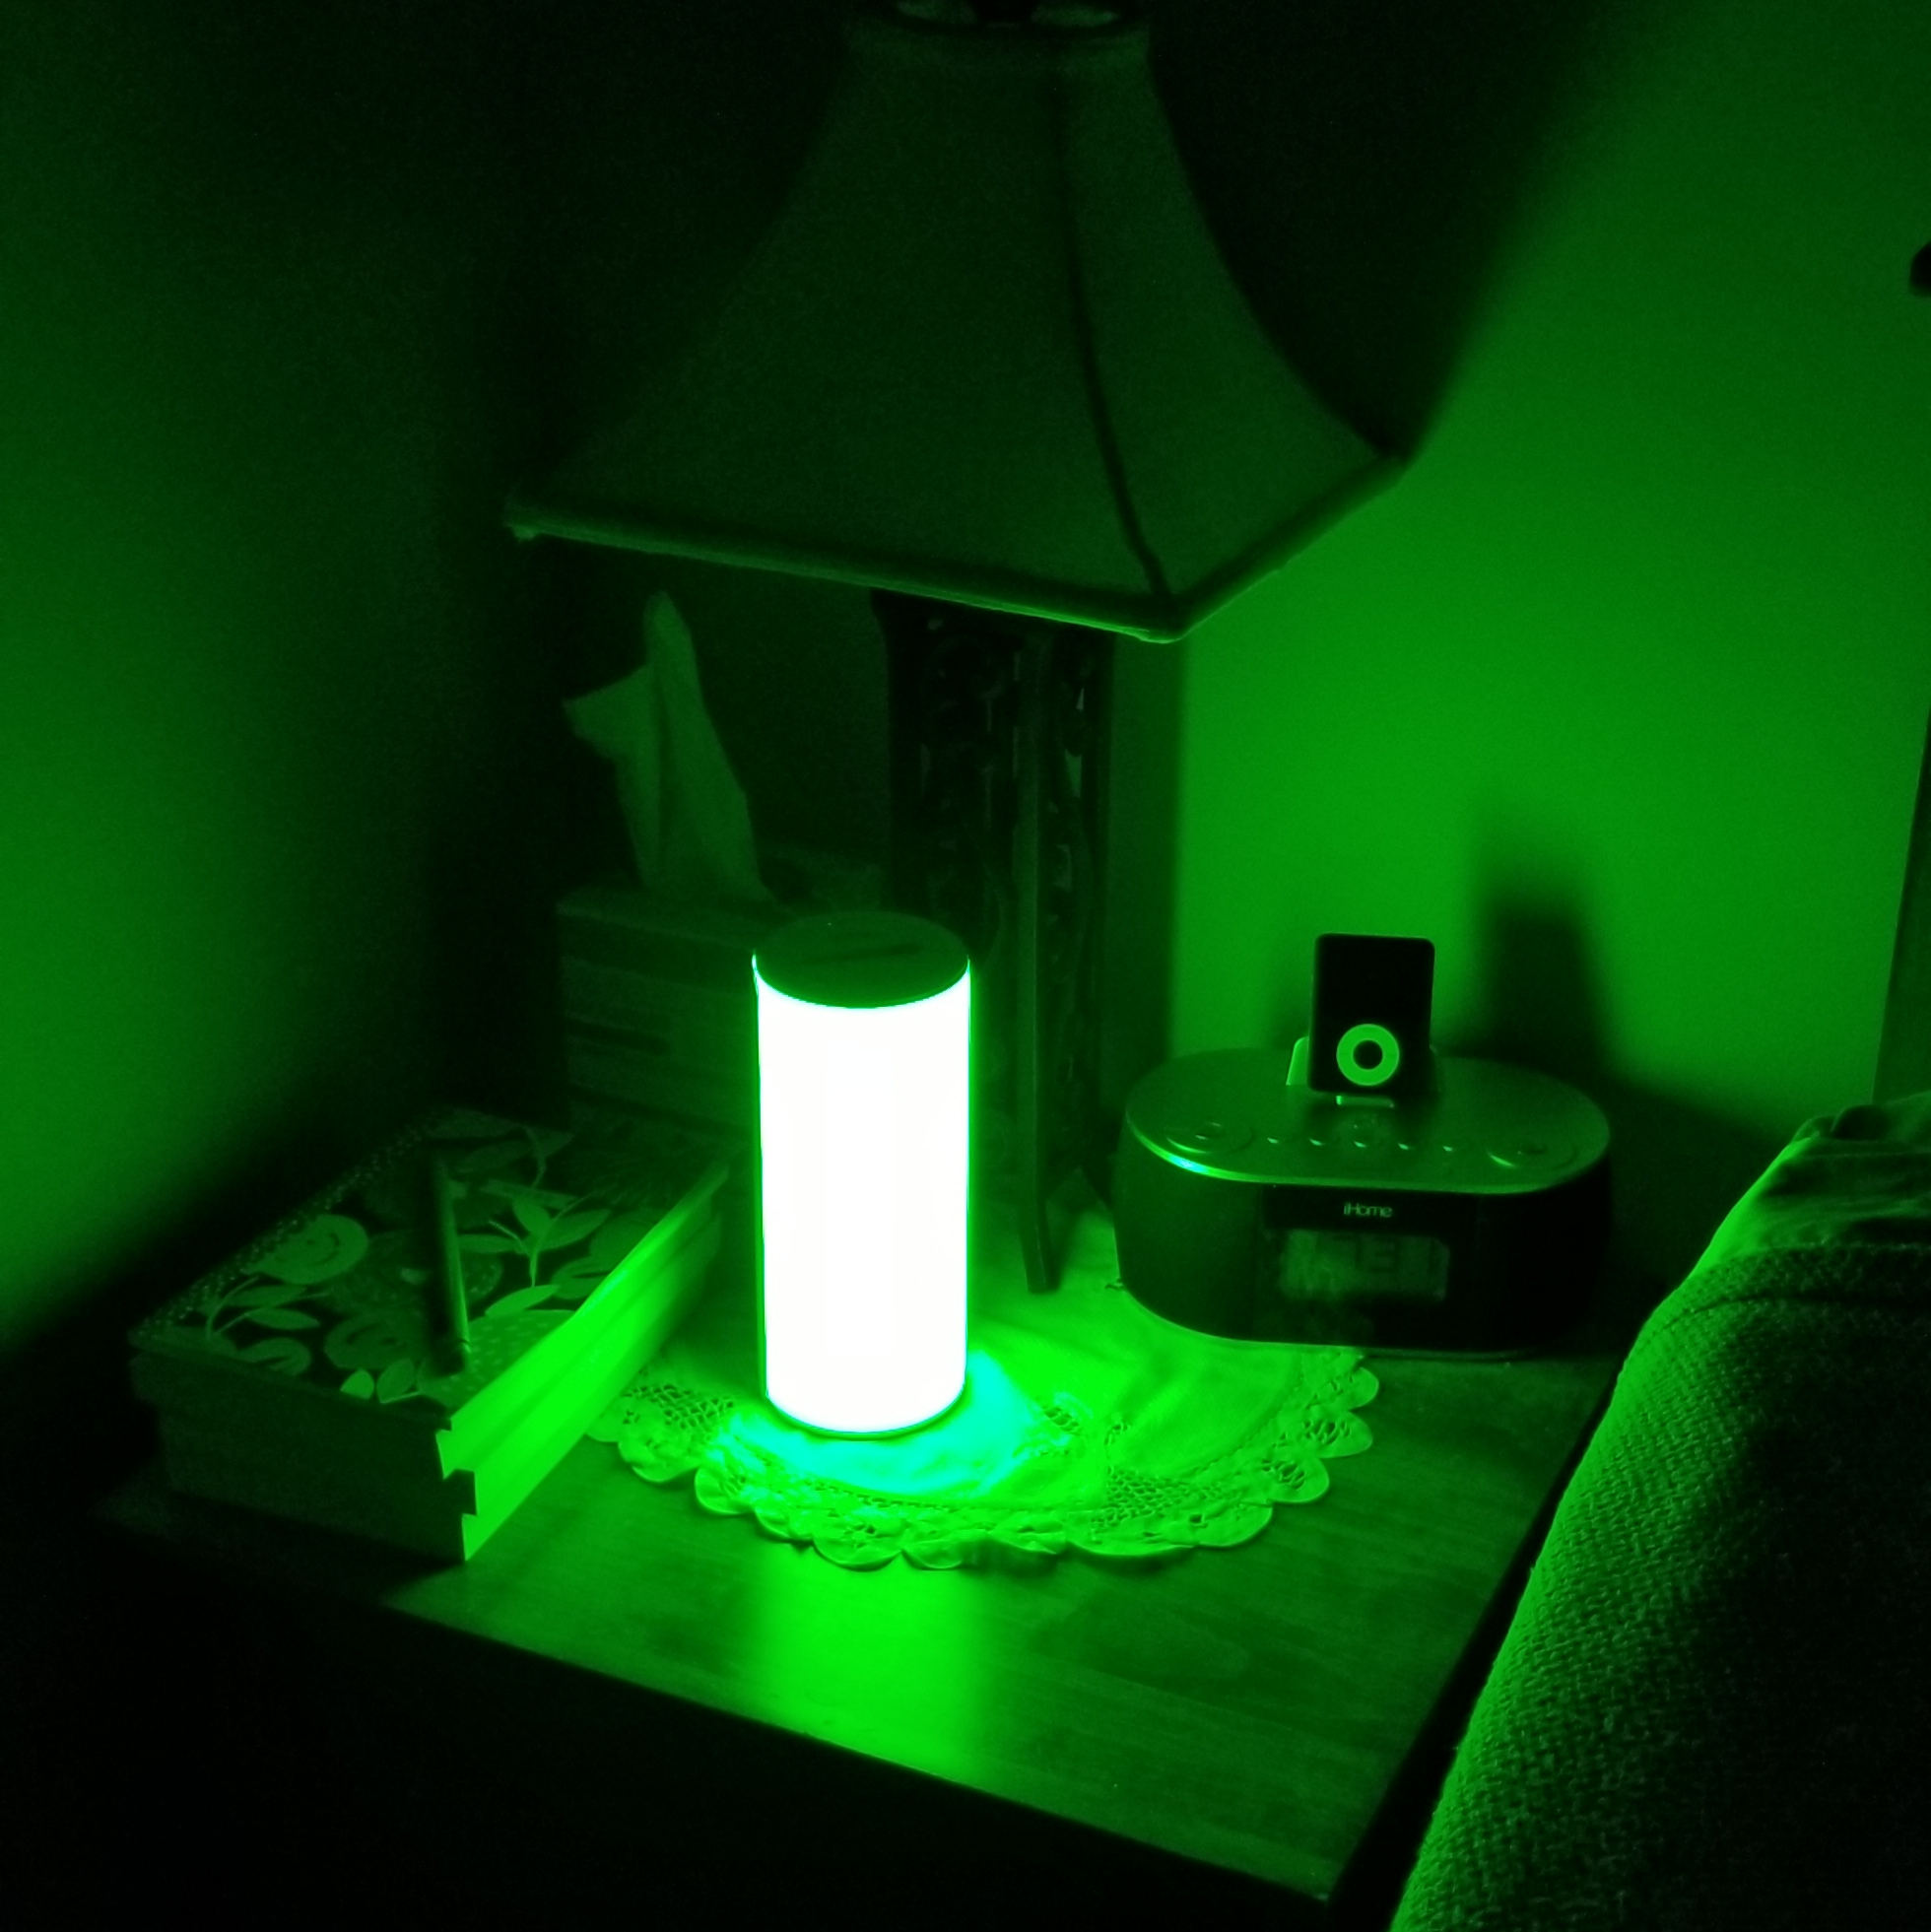 Allay Lamp lit white on bedside table with traditional lamp, books, and a clock radio.